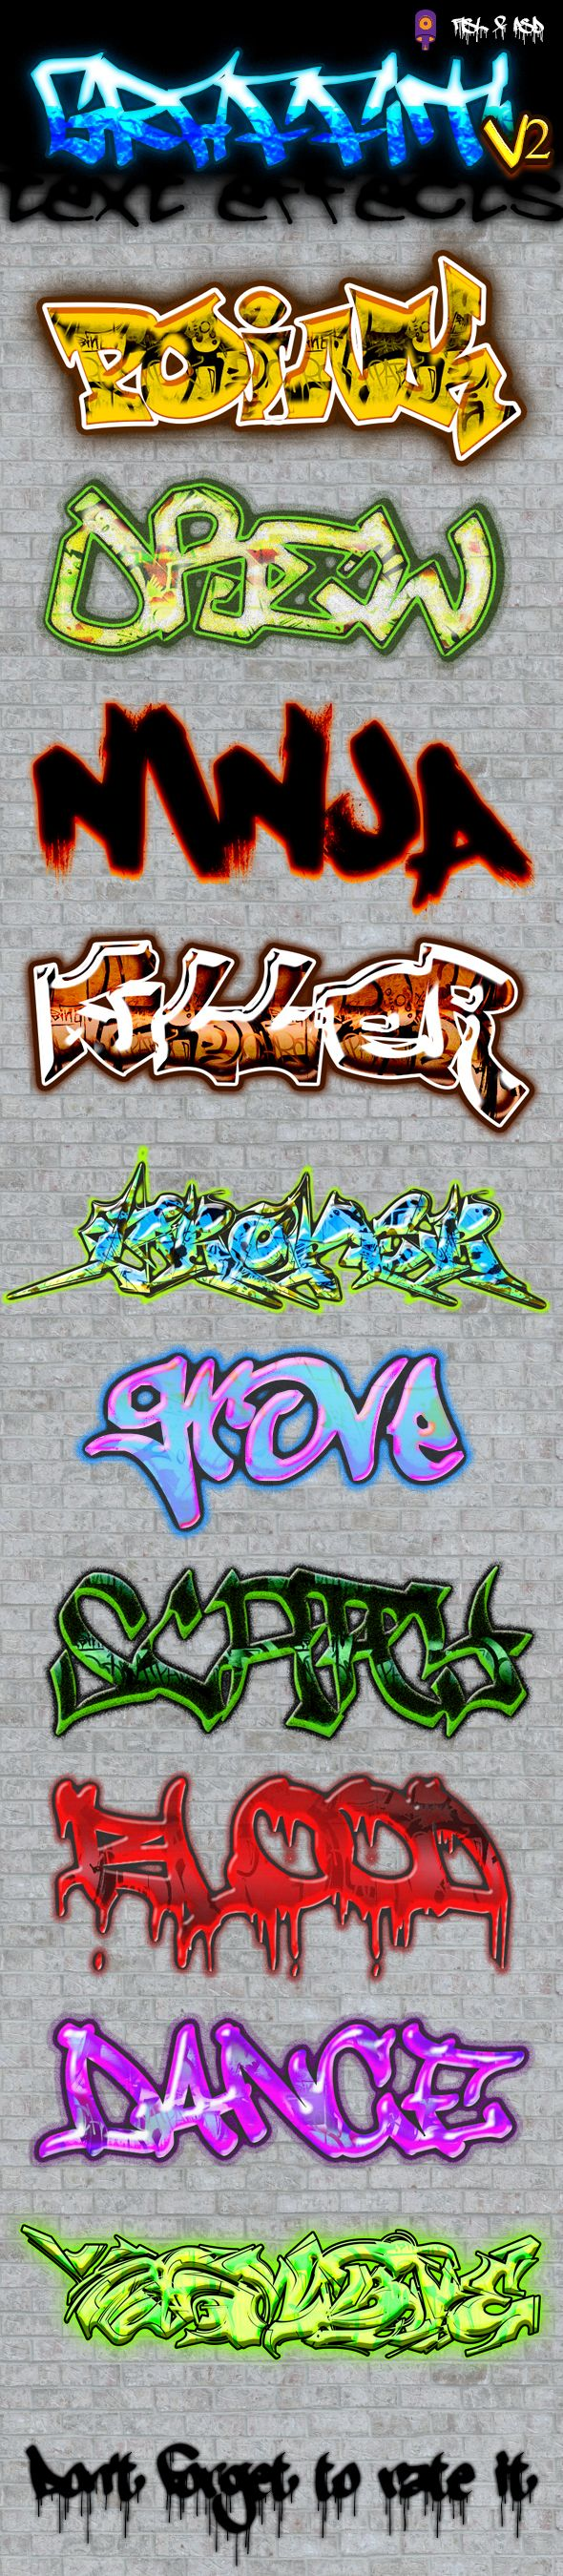 Graffiti Text Effects V2 by Noctilucous 10 Graffiti text effects that can be used in logo, banners, flyers, websites, brochure or any kind of decoration purpose. Features